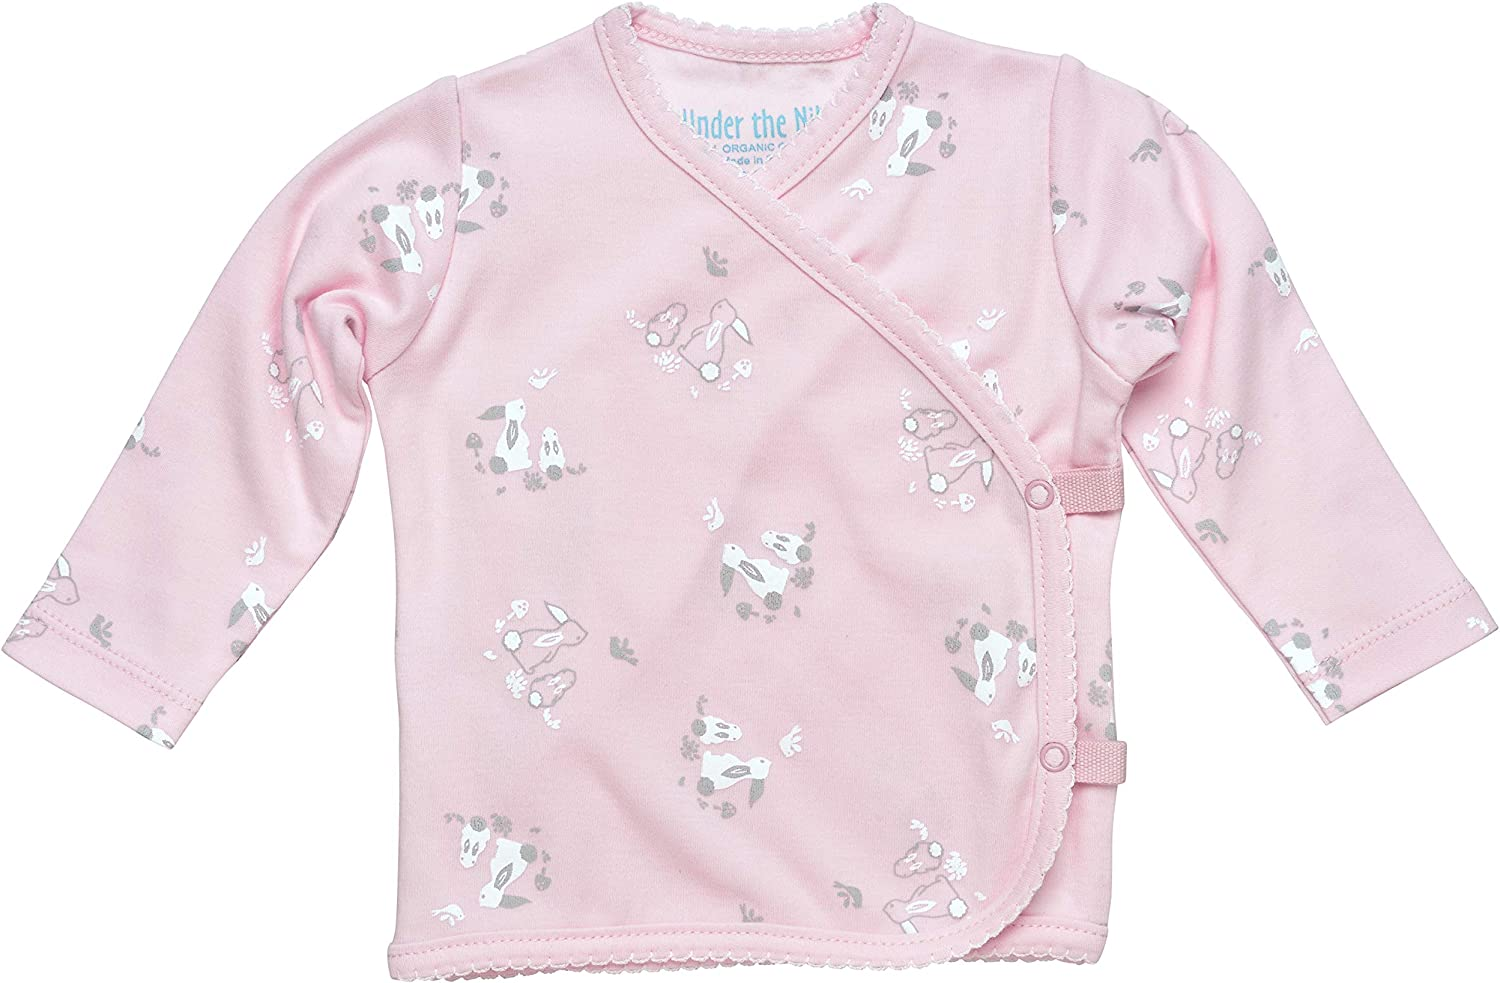 Under the Nile Baby Girl Long Sleeve Side Snap T-Shirt Size